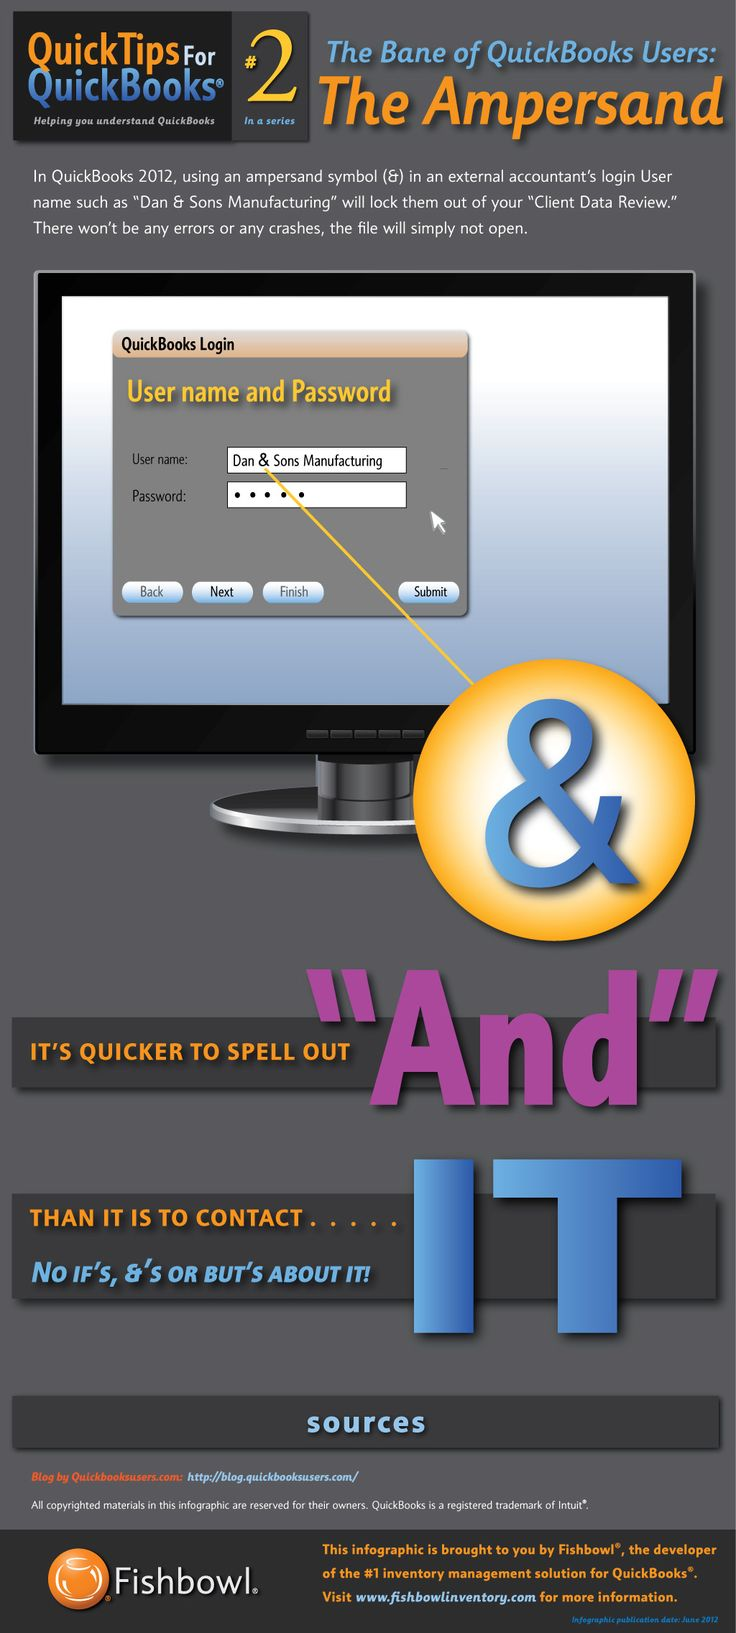 QuickBooks Tip 2: The Bane of QuickBooks Users, Using the ampersand with QuickBooks logins.